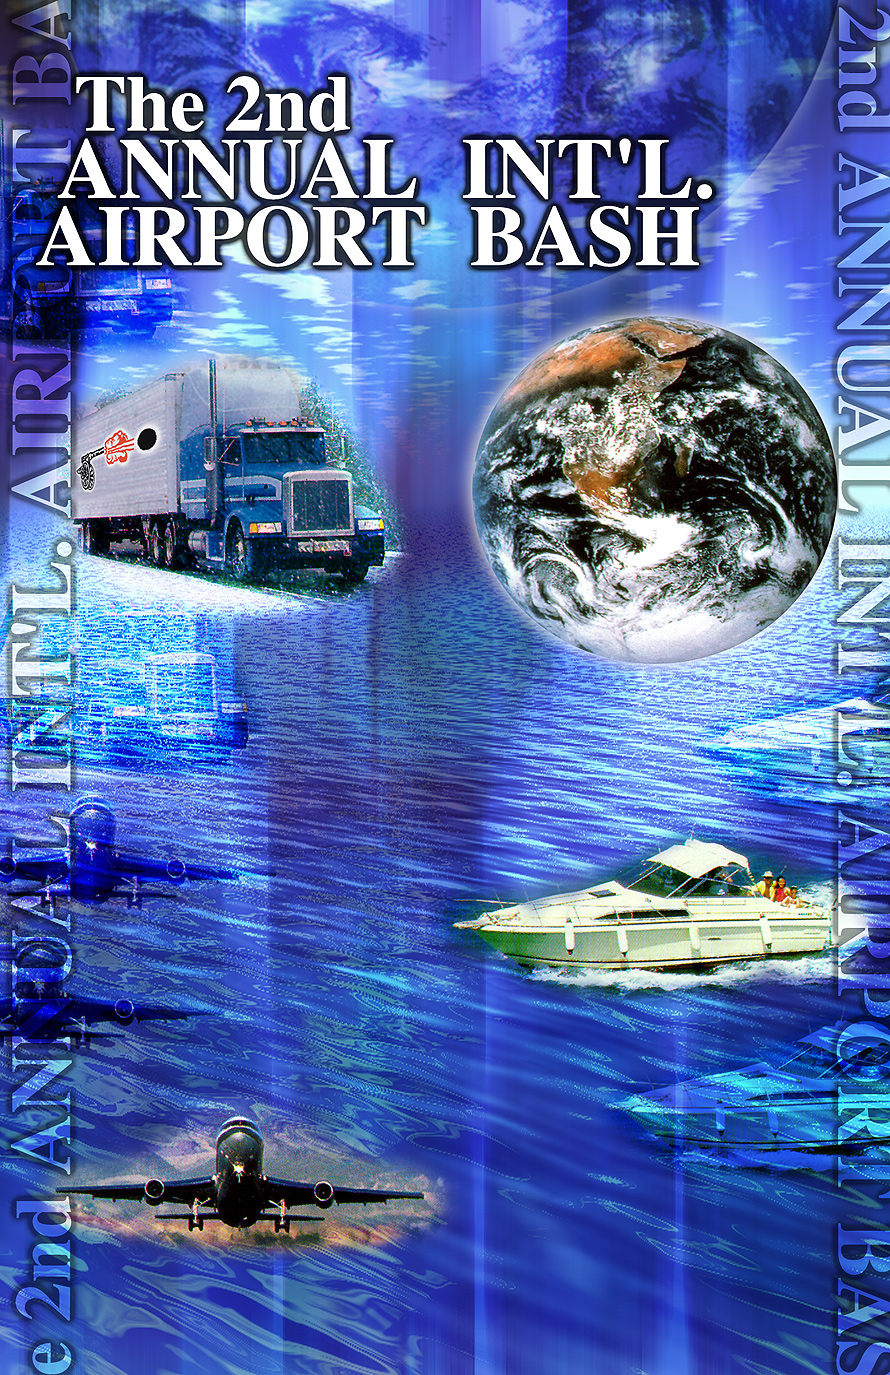 Second Annual International Airport Bash